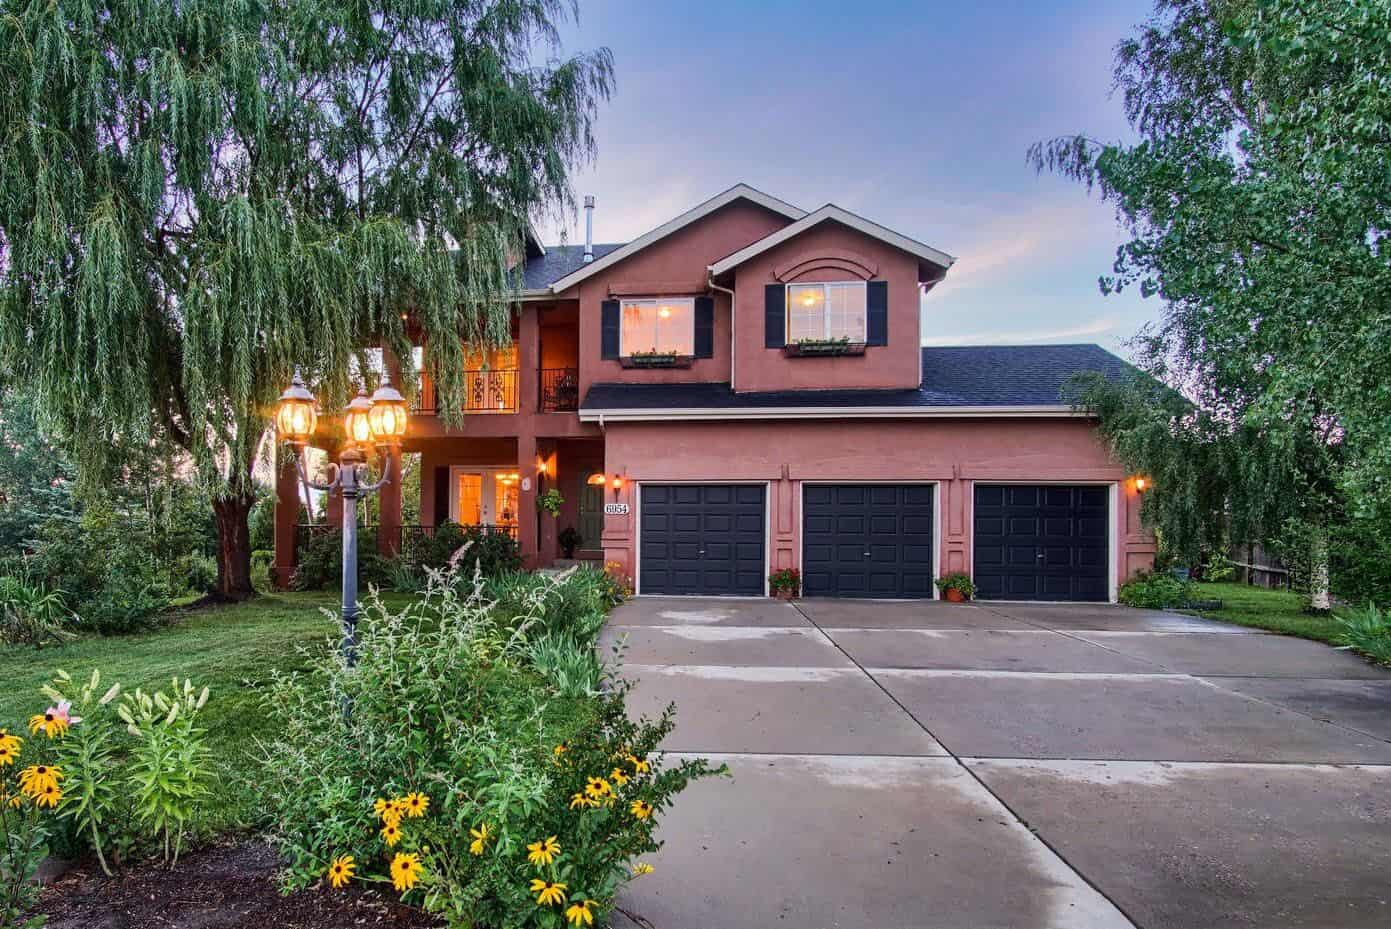 Stunning Home on Cul-De-Sac Lot with Mountain Views